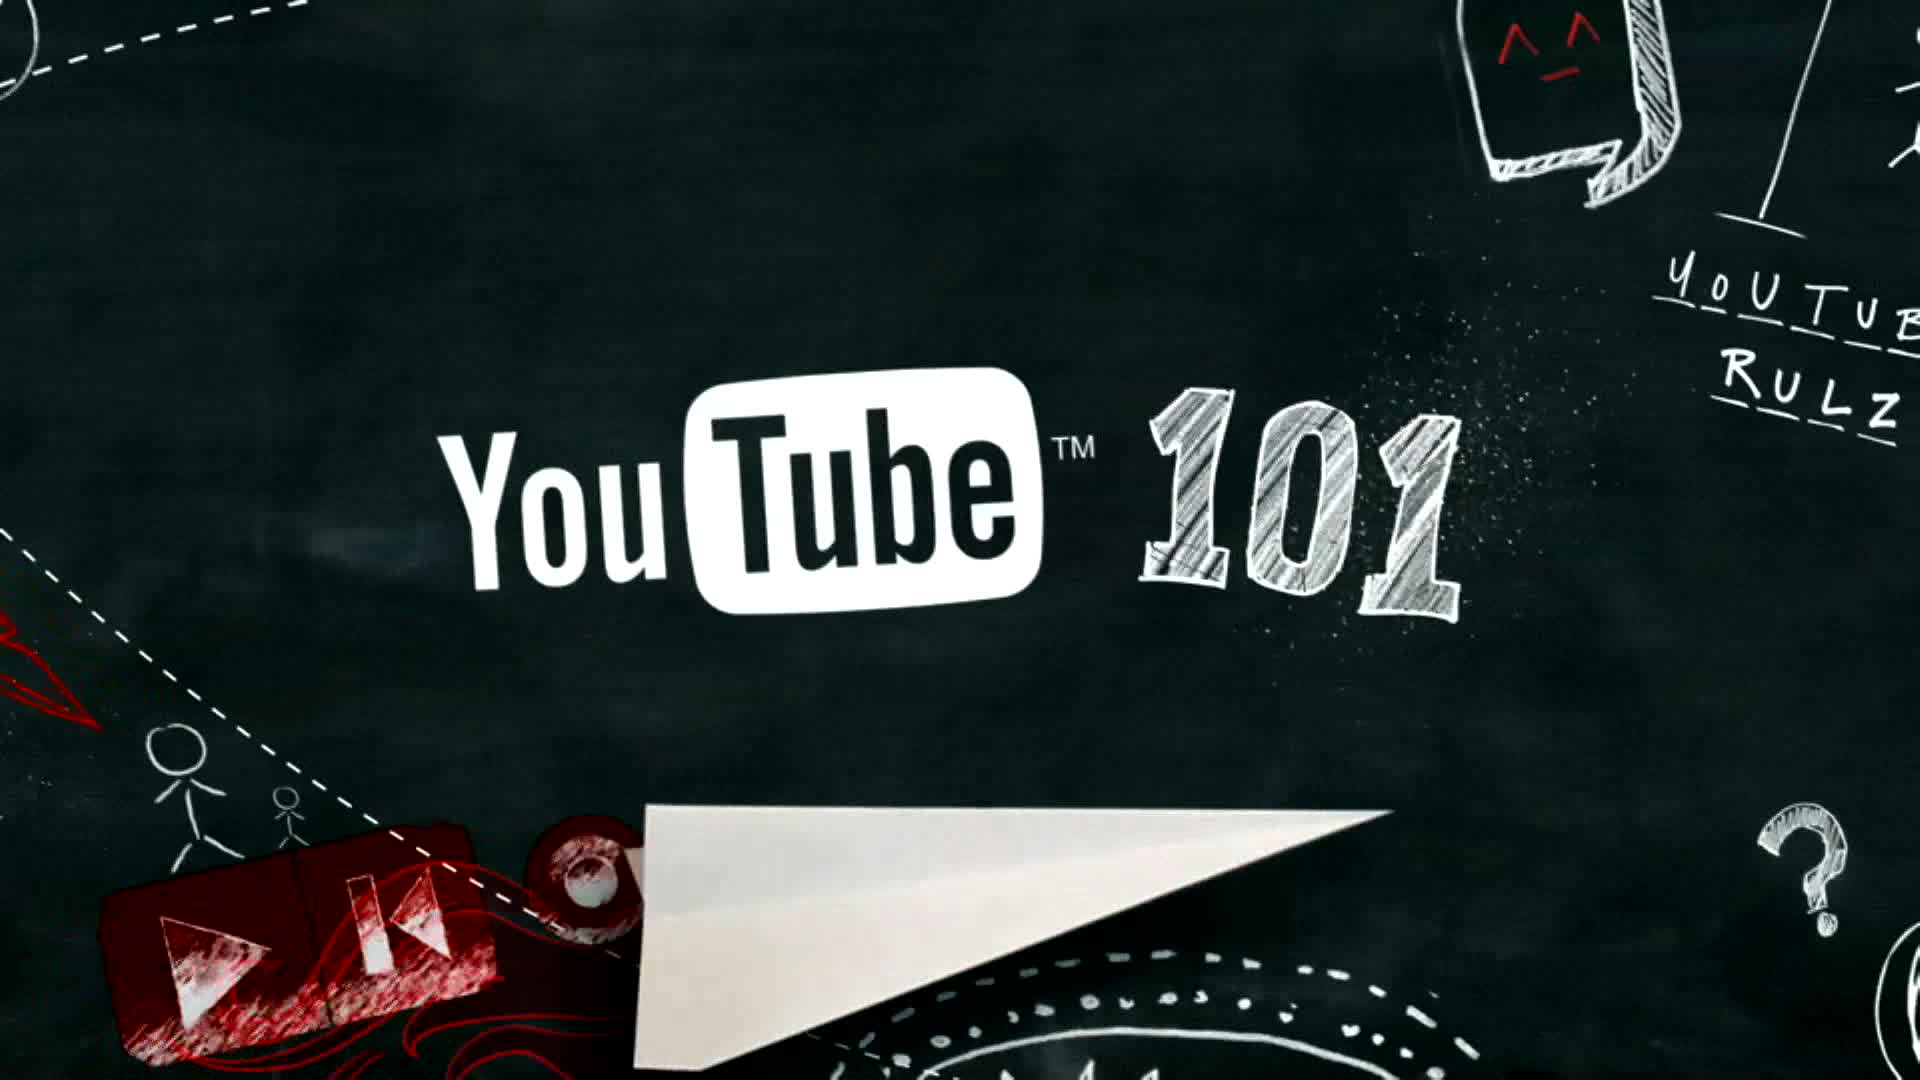 People's Voice - YouTube 101: How To Upload